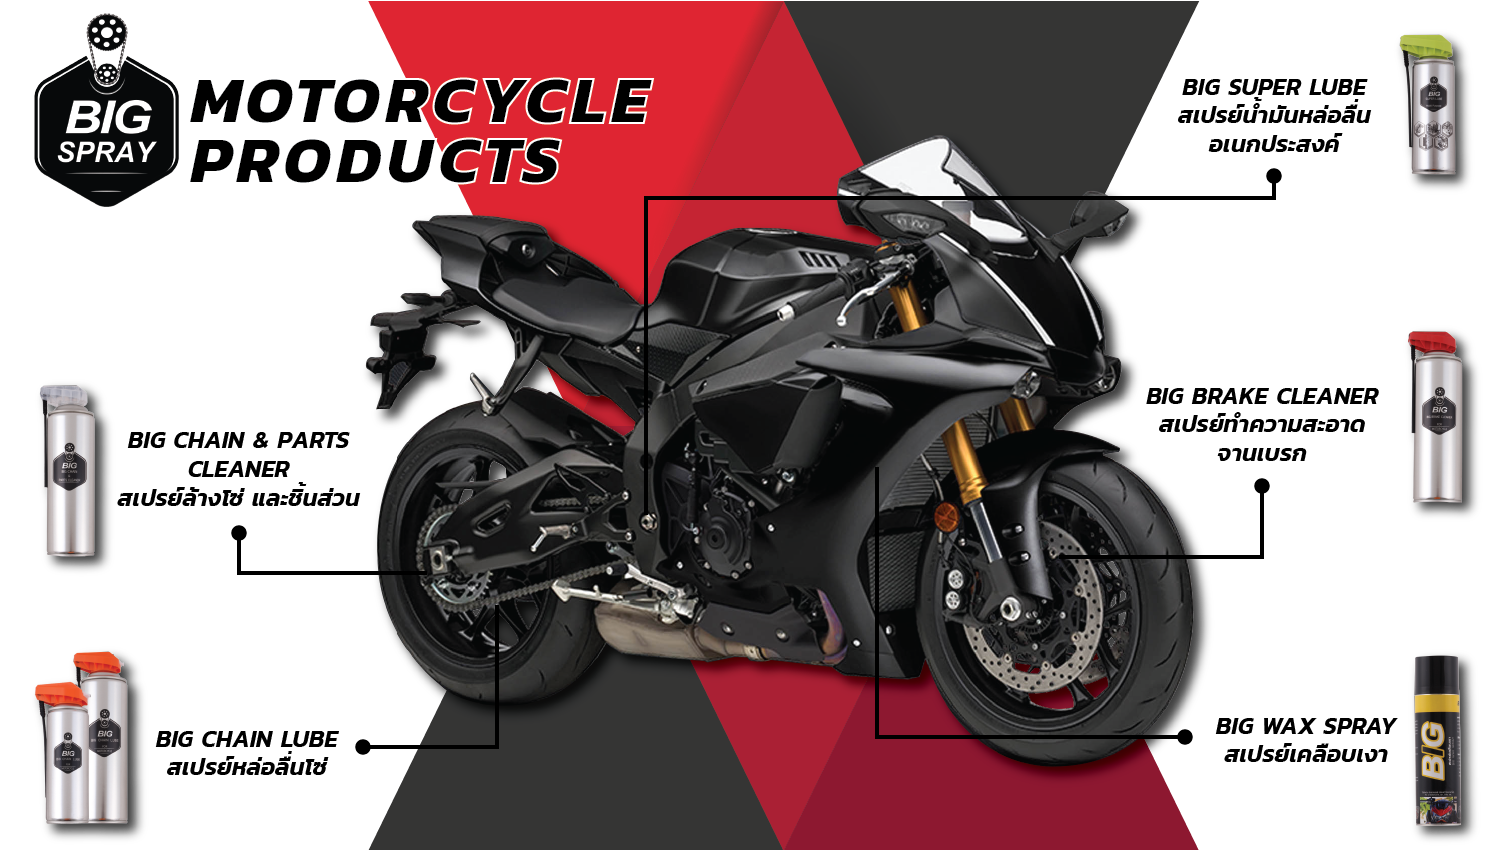 Motorcycle-banner-1500x850